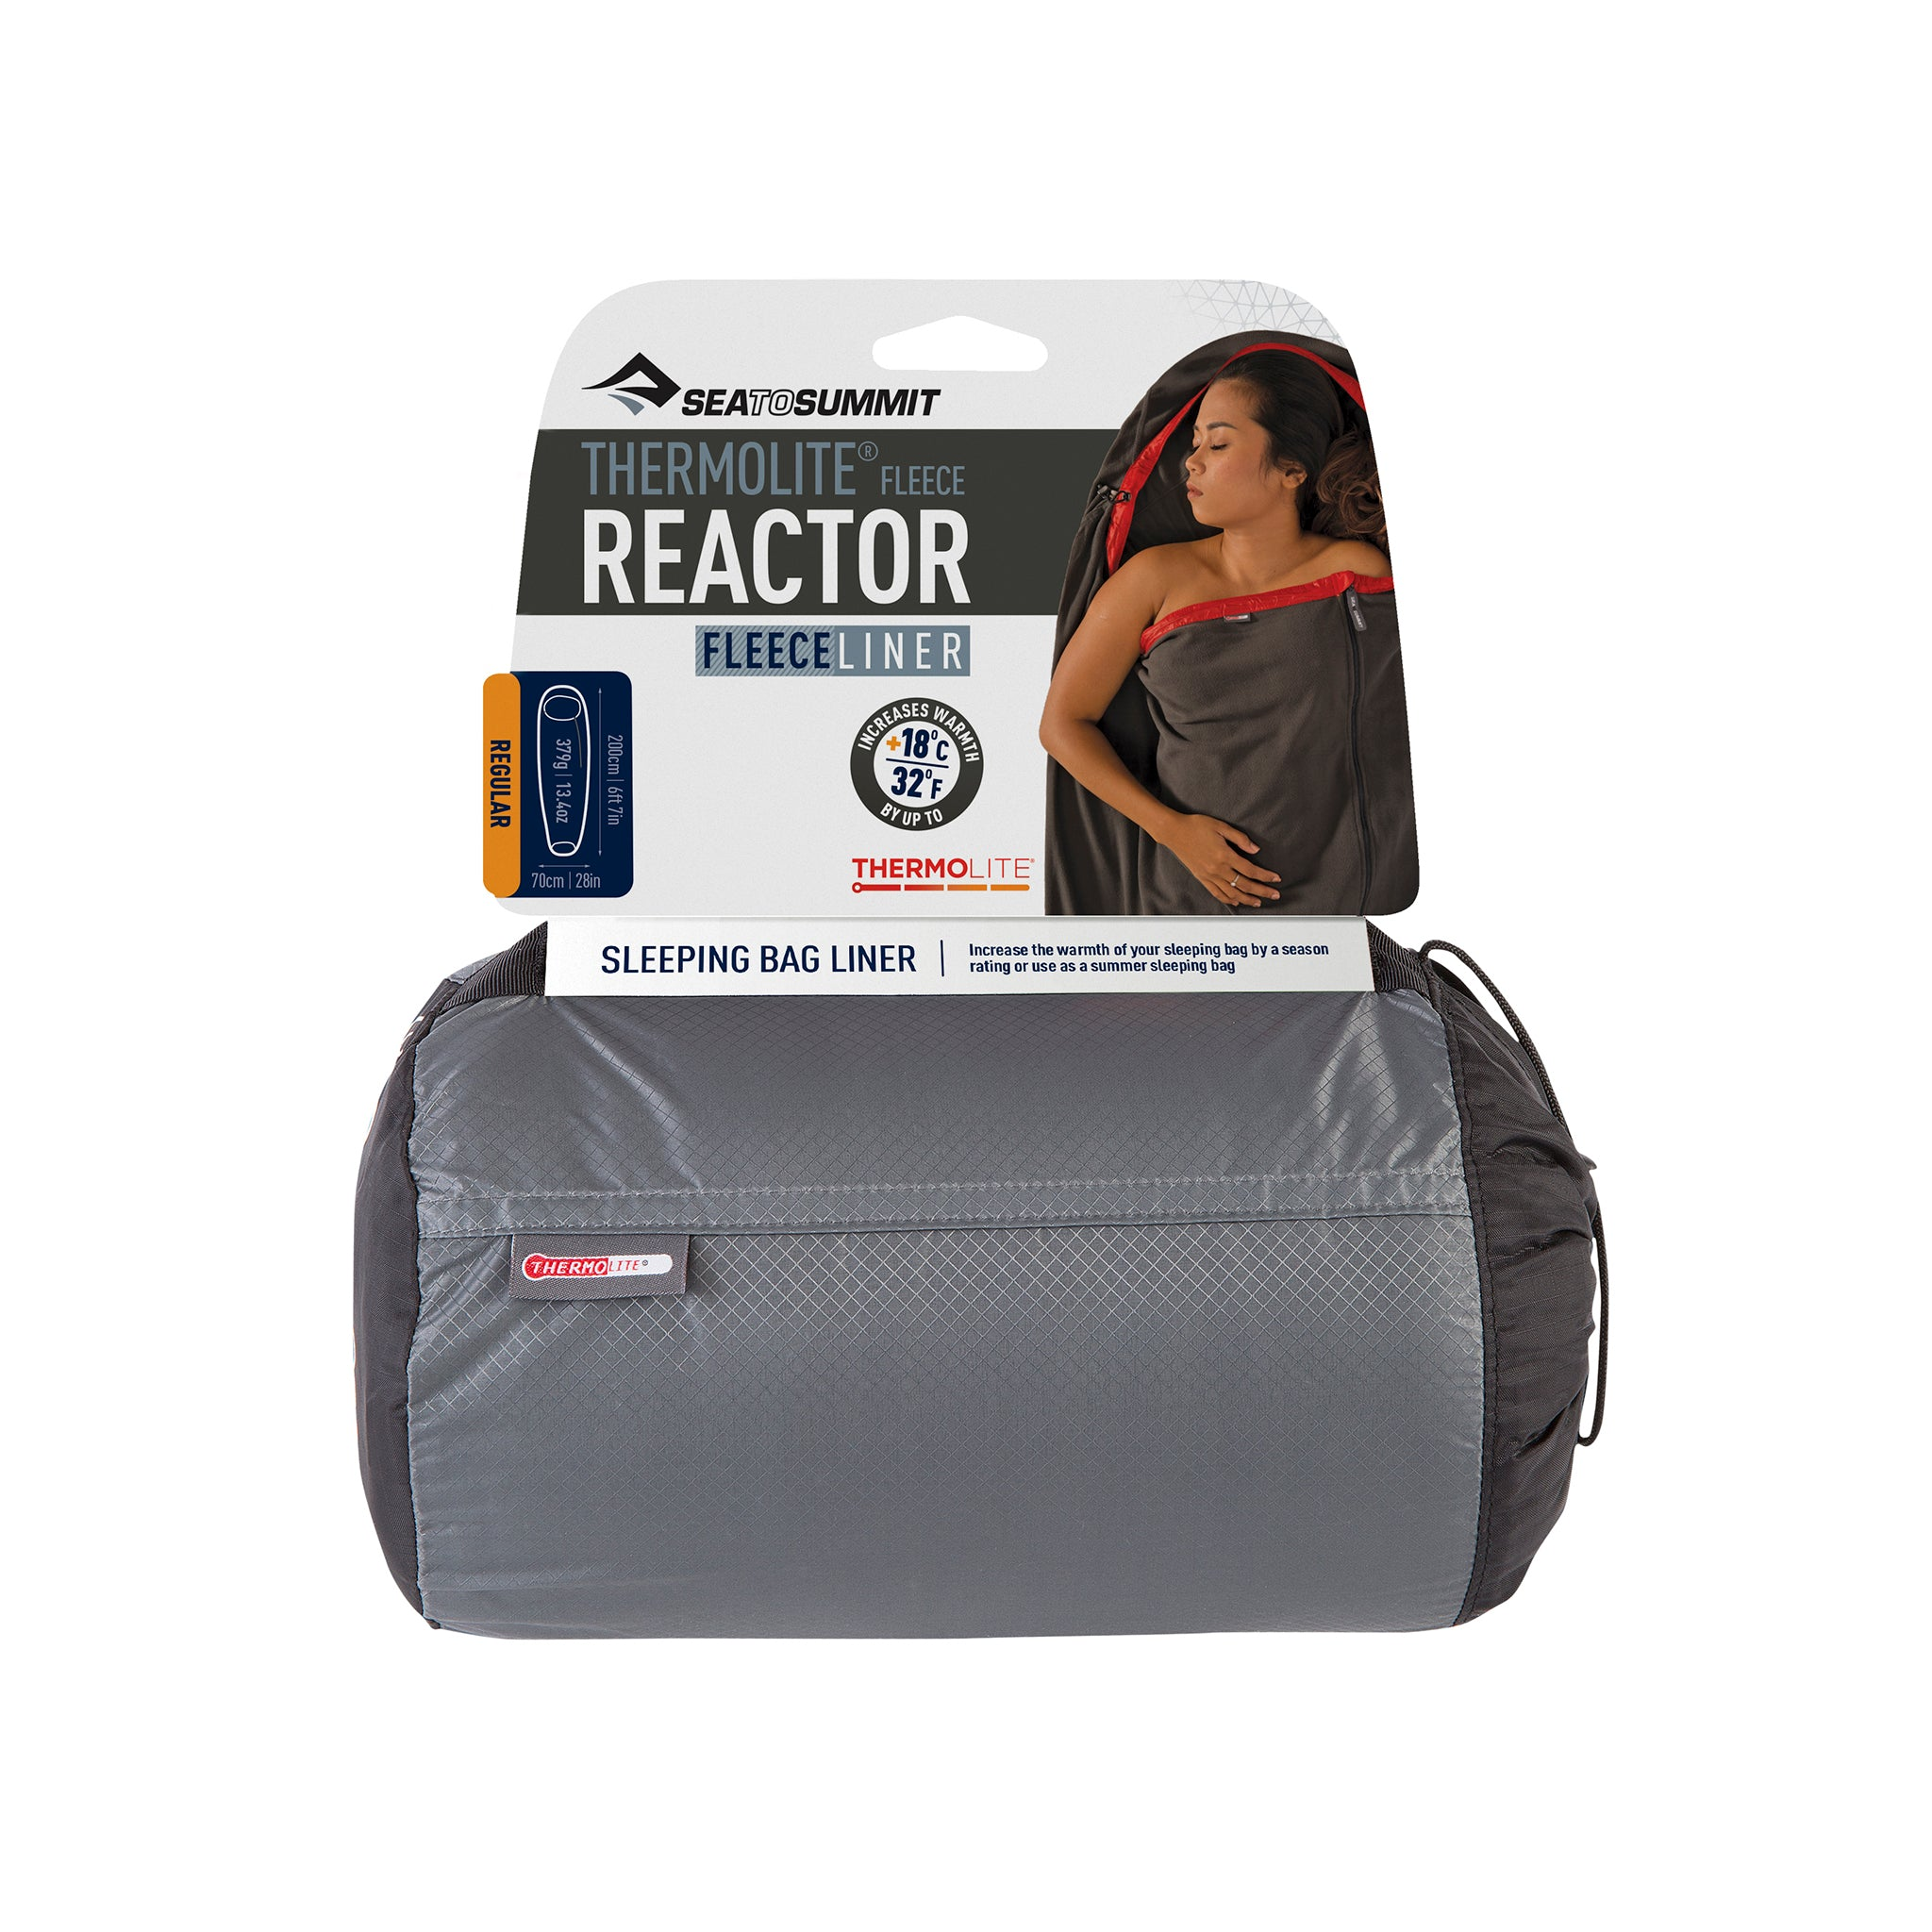 Reactor_Fleece_Liner___Thermolite_Cold_Weather_Liner_Packaged